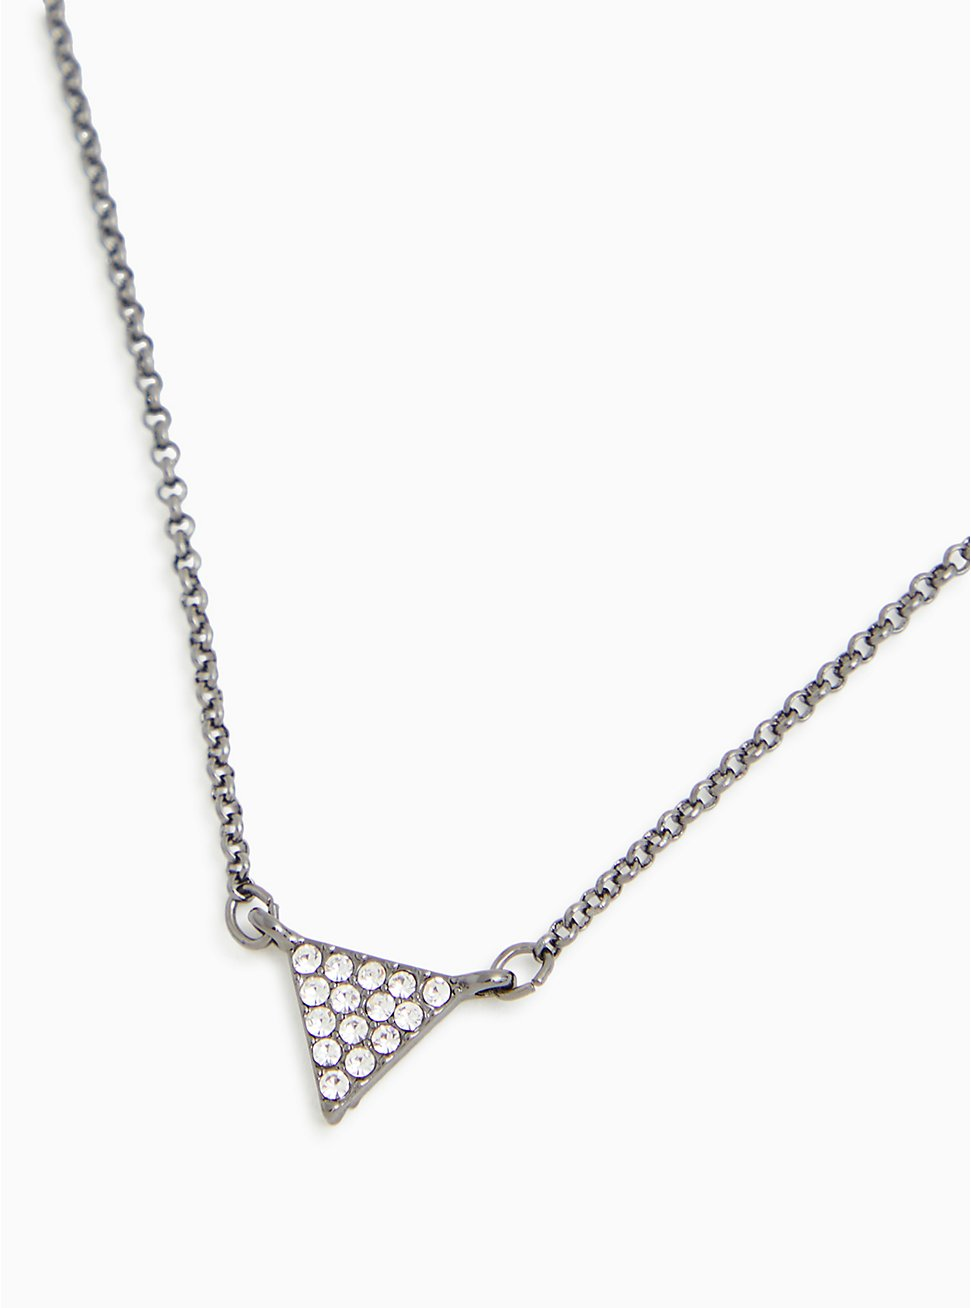 Hematite-Tone Pave Triangle Charm Delicate Necklace, , hi-res